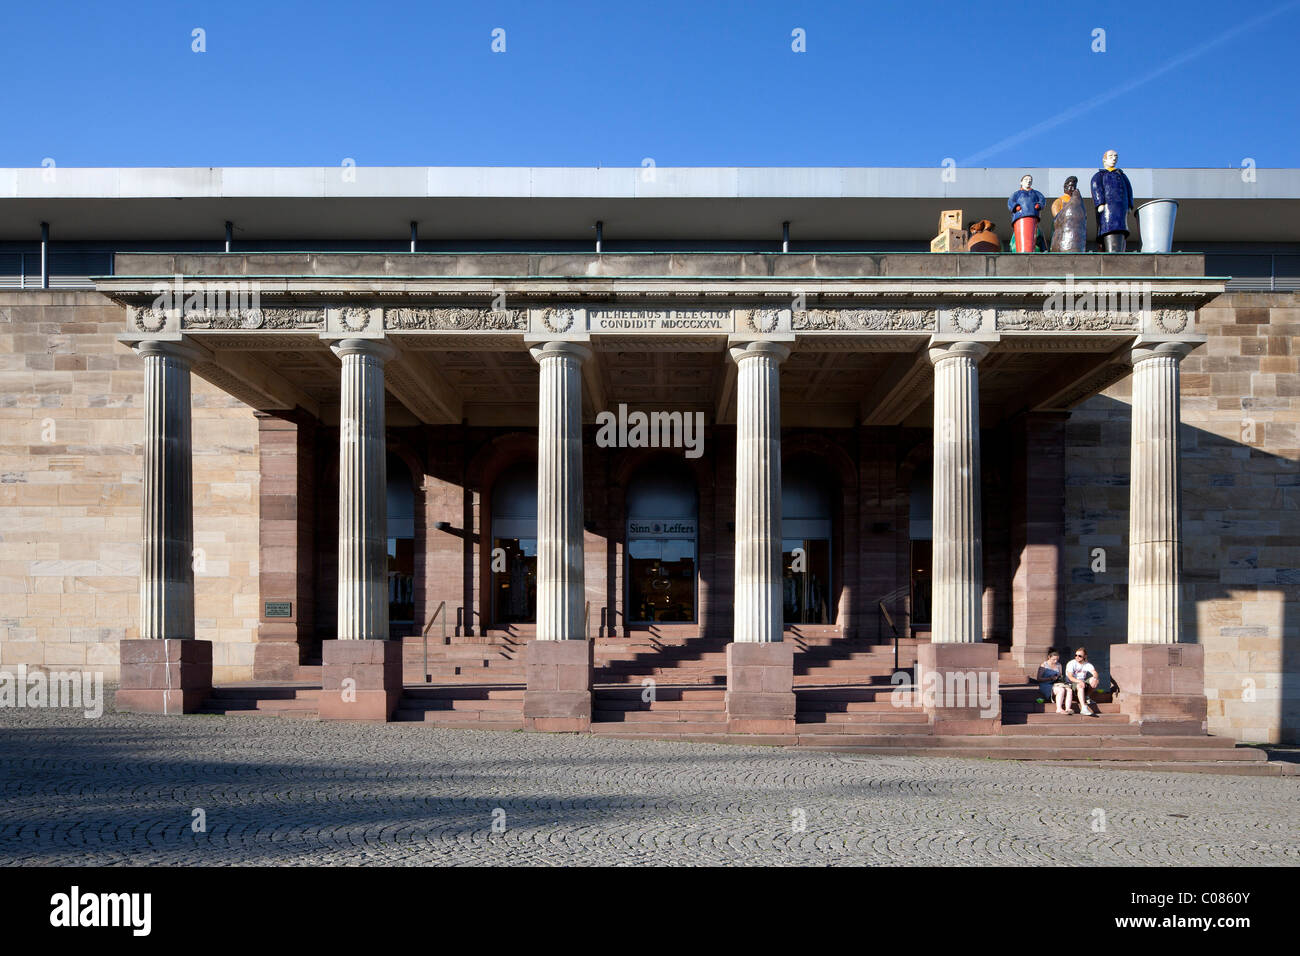 Portico of the former imperial palace, Museum Fridericianum, Kassel, Hesse, Germany, Europe - Stock Image